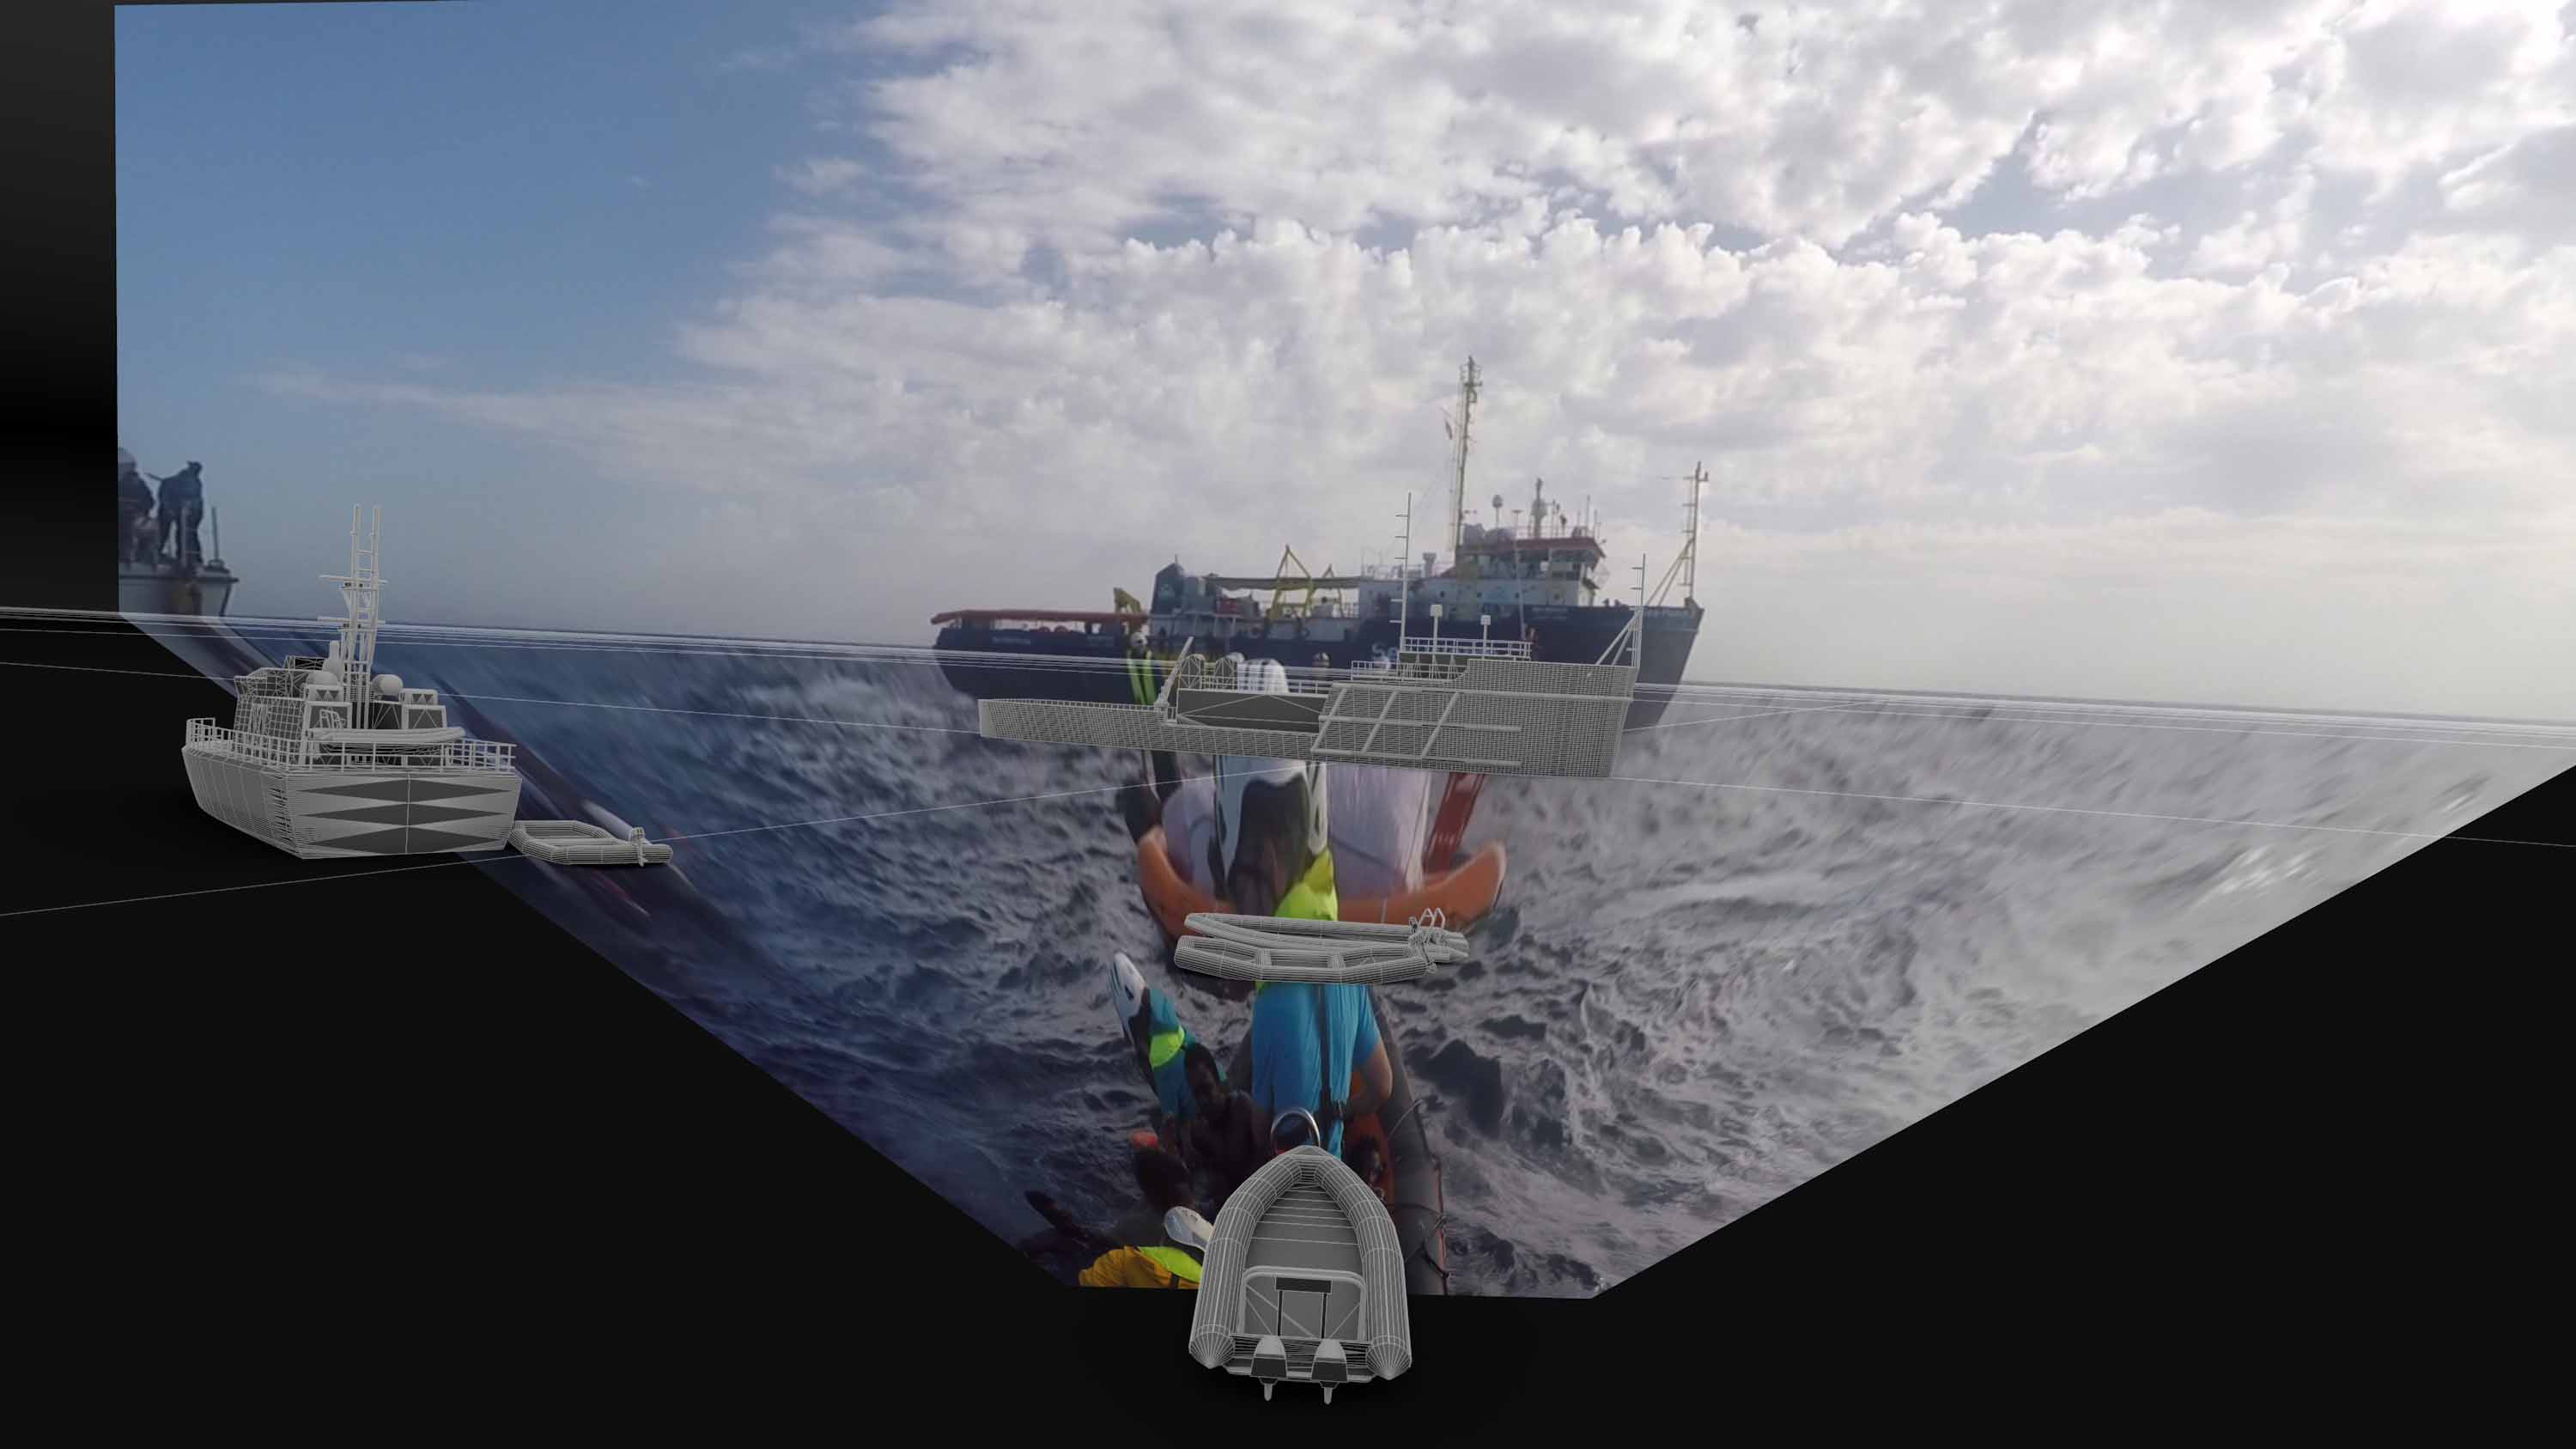 Forensic Architecture, Crew members from the NGO vessel Sea-Watch 2 approach a migrant boat, 2017, Composite of digital models and projected images. Photo credit: Forensic Oceanography and Forensic Architecture, 2018